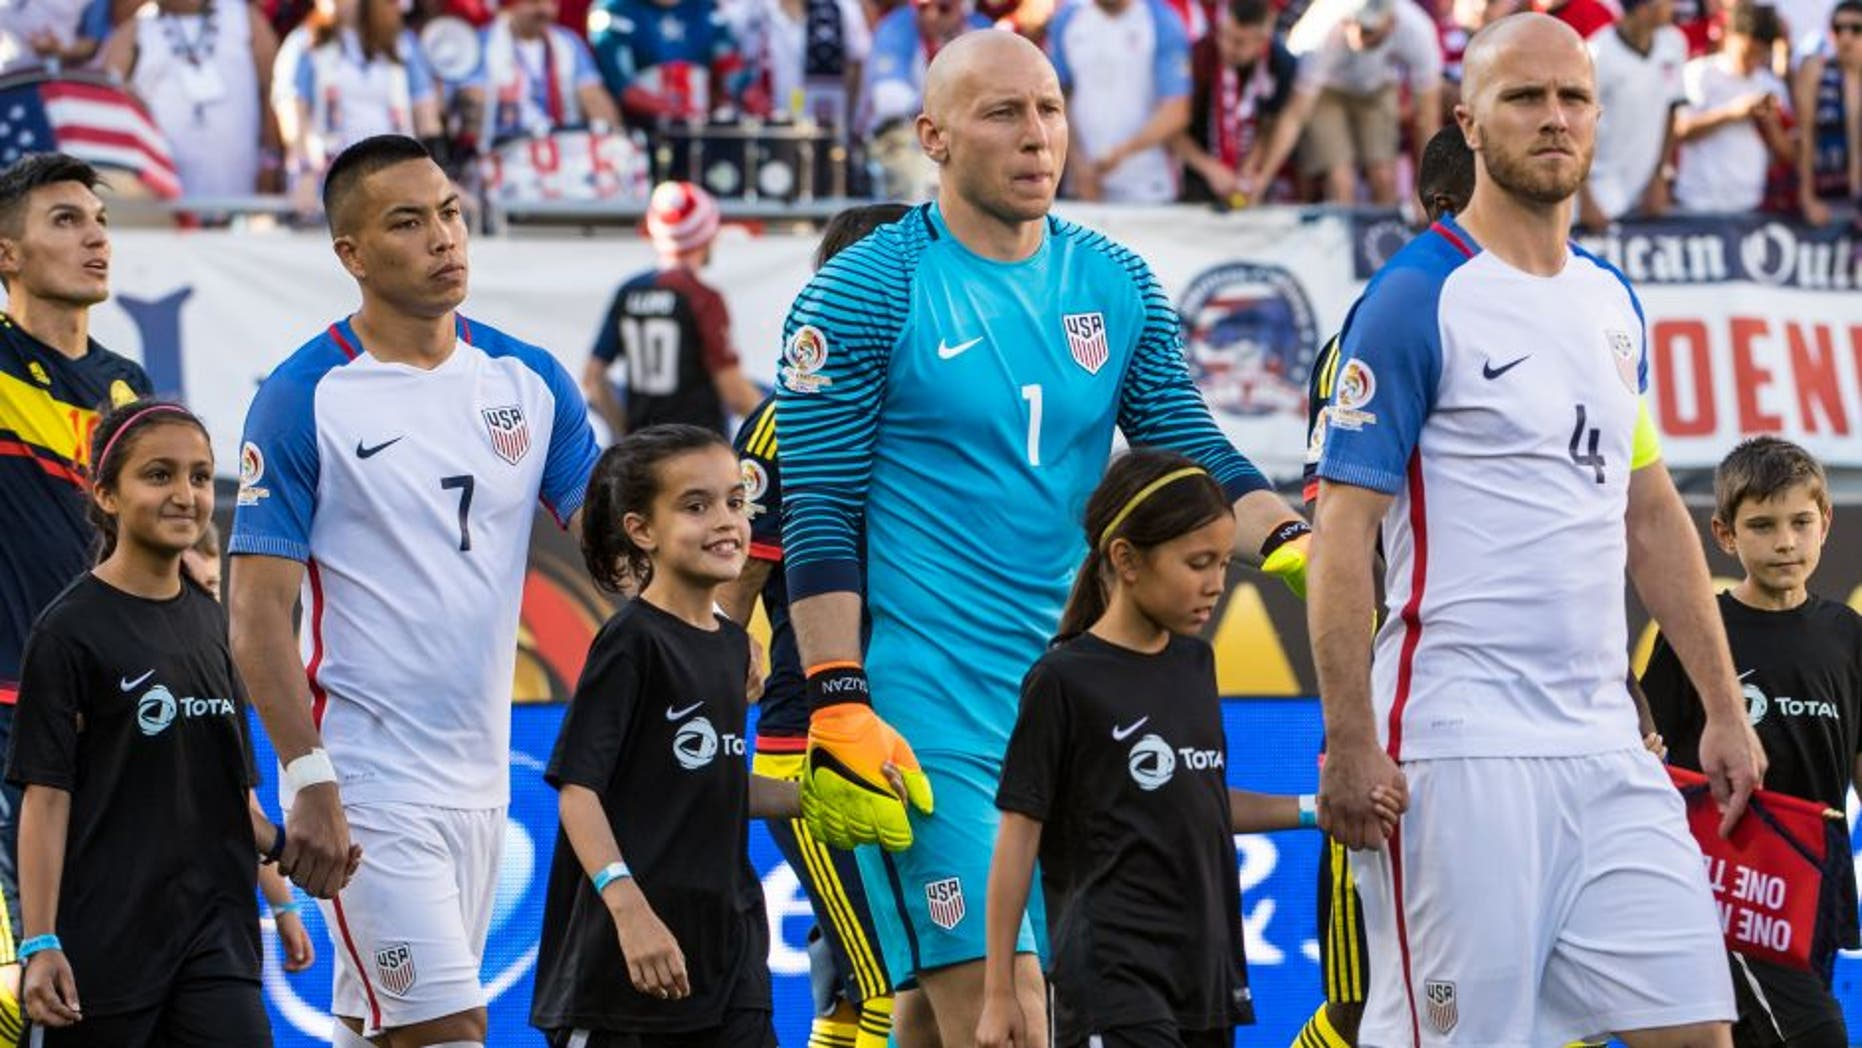 SANTA CLARA, CA - JUNE 3: Michael Bradley #4 of United States leads the team on to the field for the Copa America Centenario Group A match between the United States and Columbia at Levi's Stadium on June 3, 2016 in Santa Clara, California. Colombia won the match 2-0 (Photo by Shaun Clark/Getty Images)